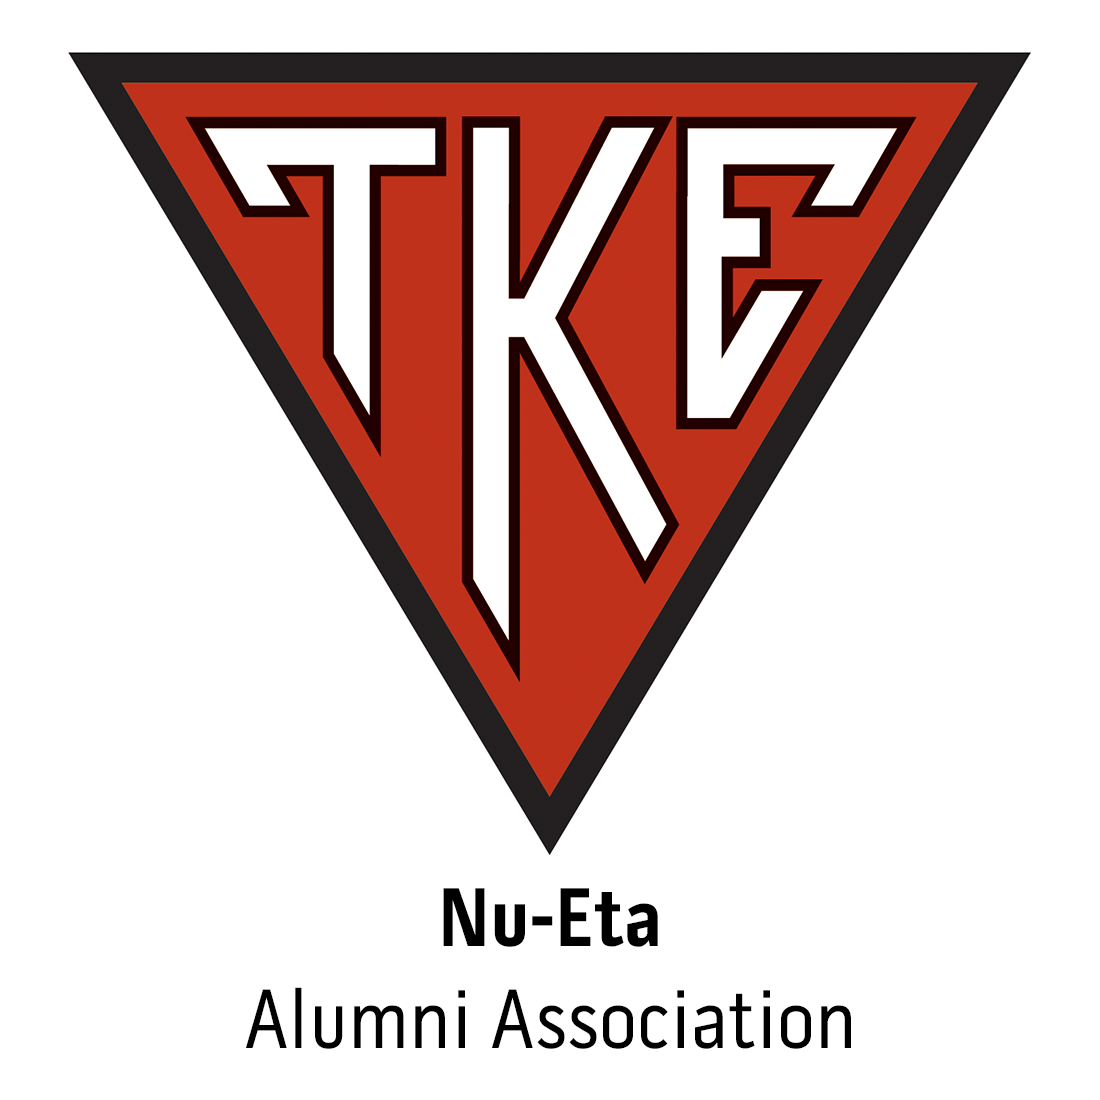 Nu-Eta Alumni Association Alumni at Boise State University